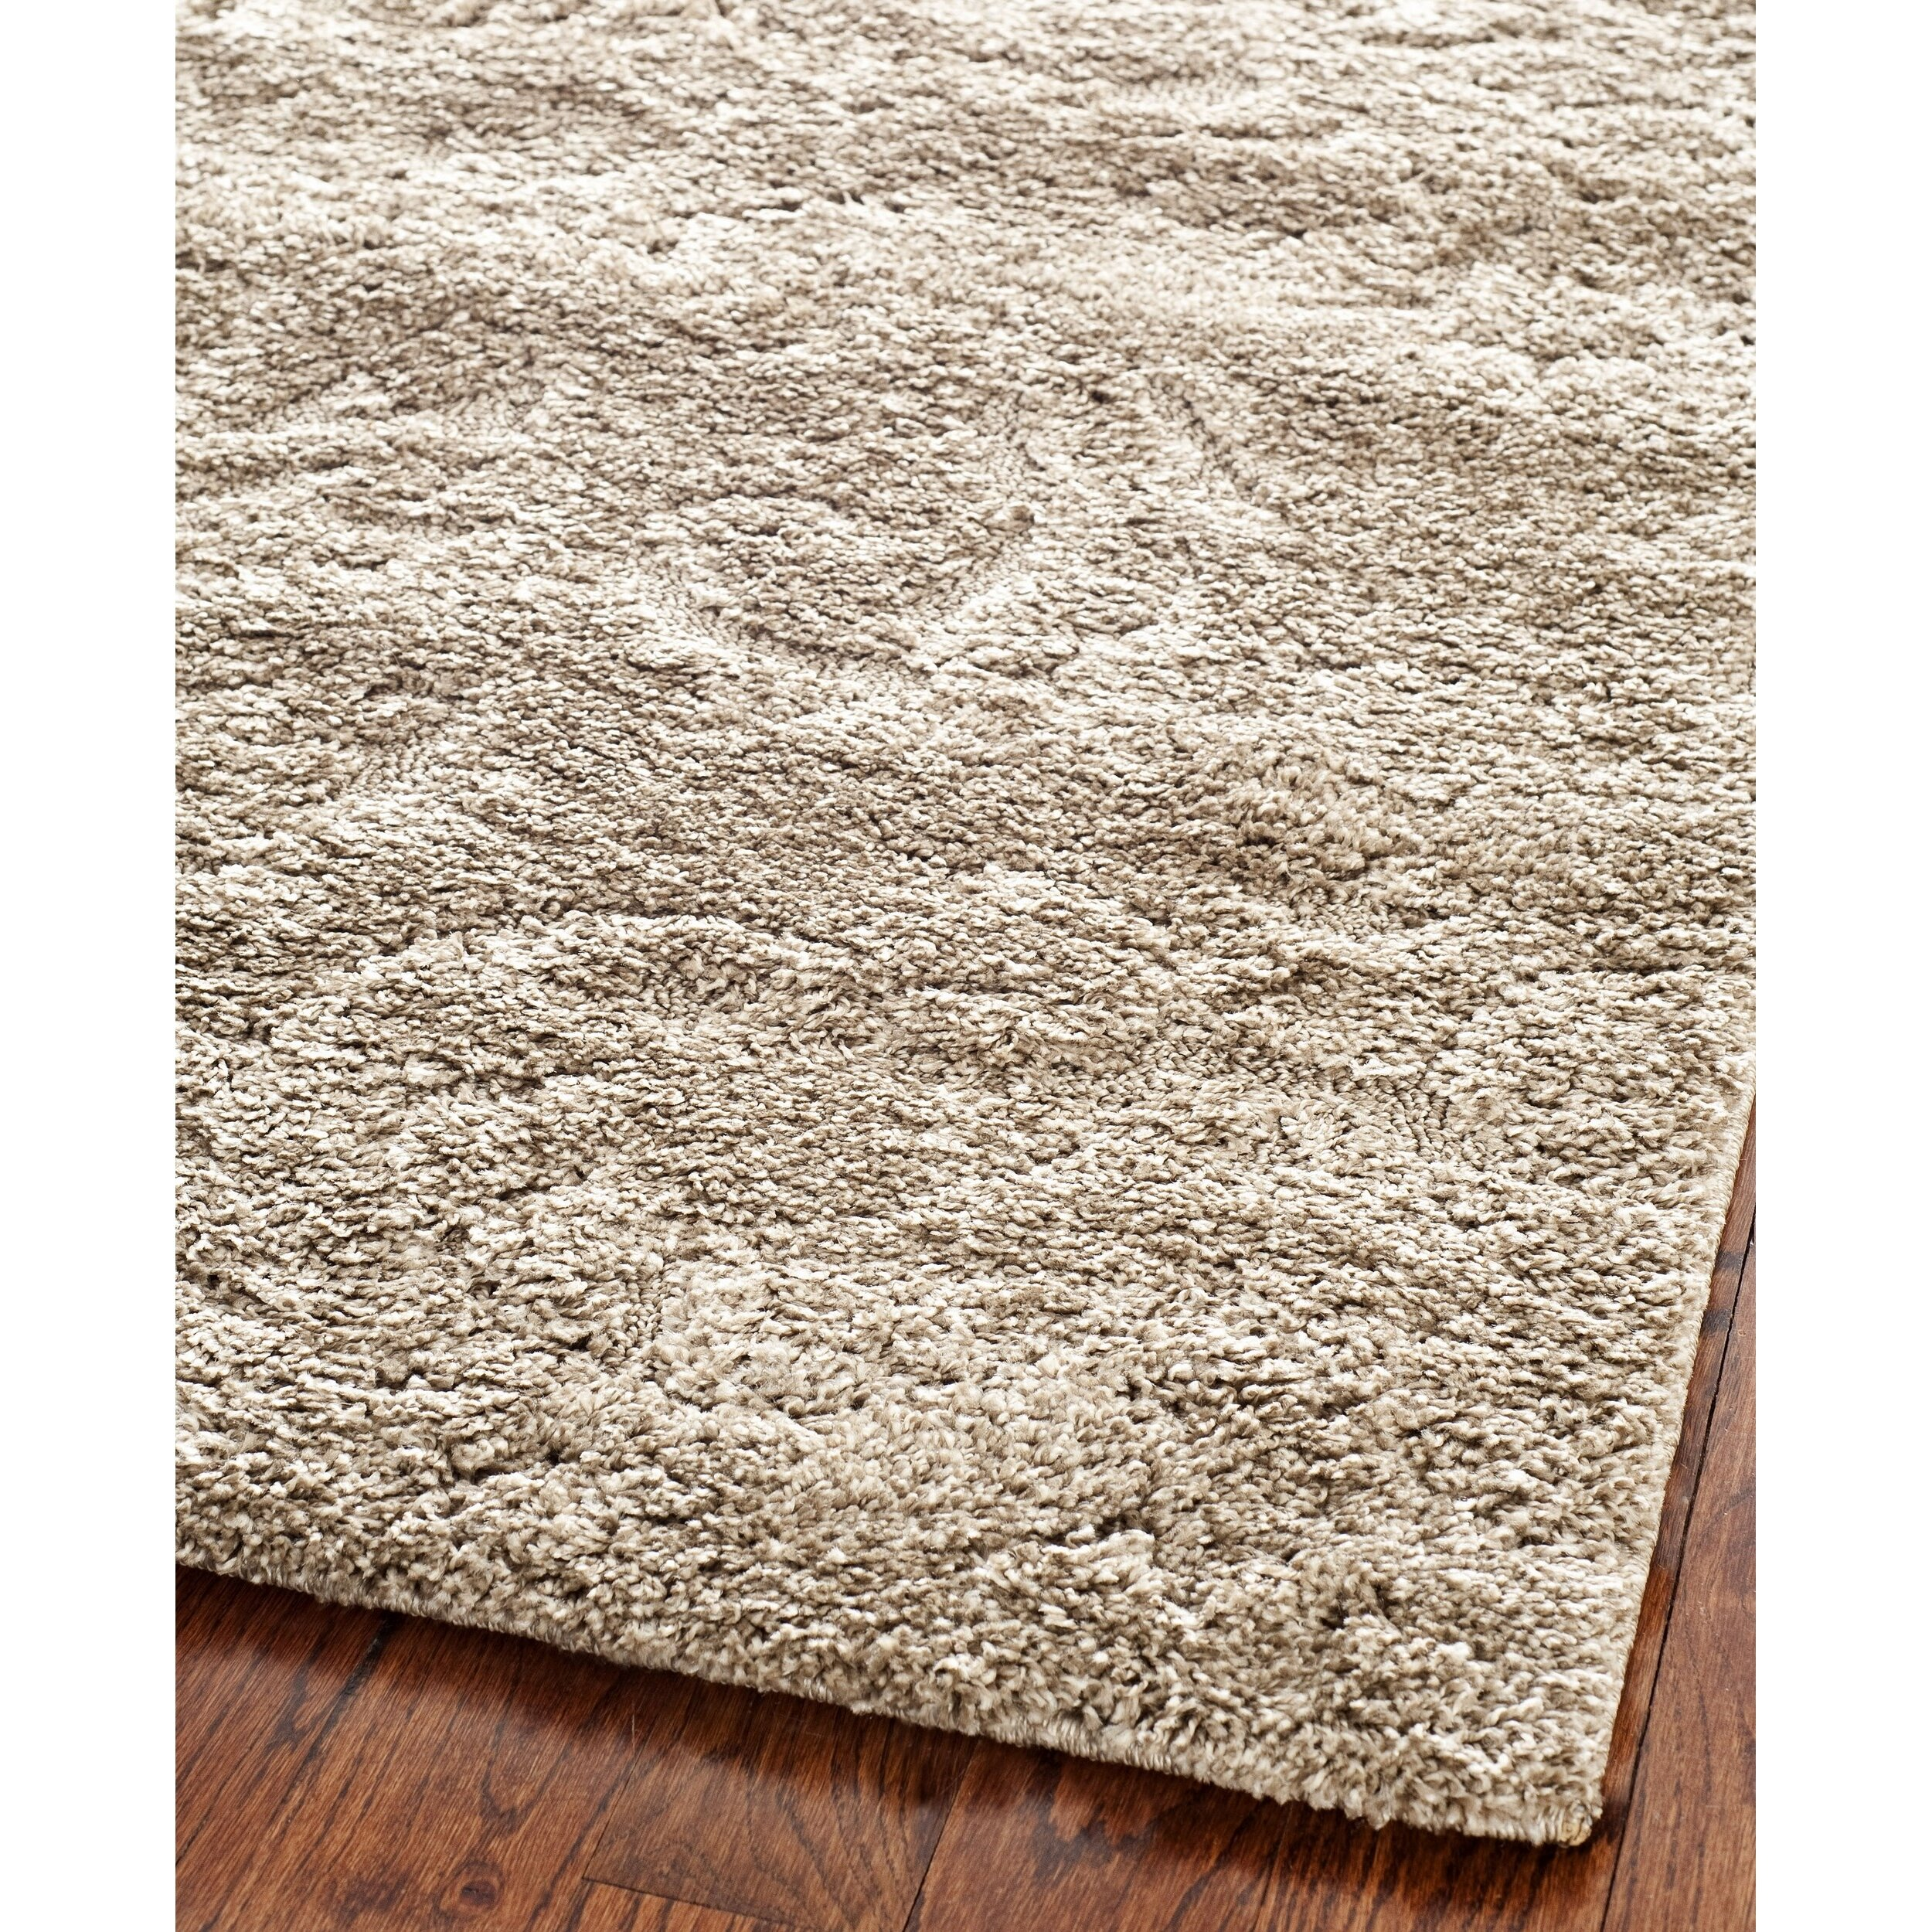 House Of Hampton Flanery Beige Cream Area Rug Amp Reviews